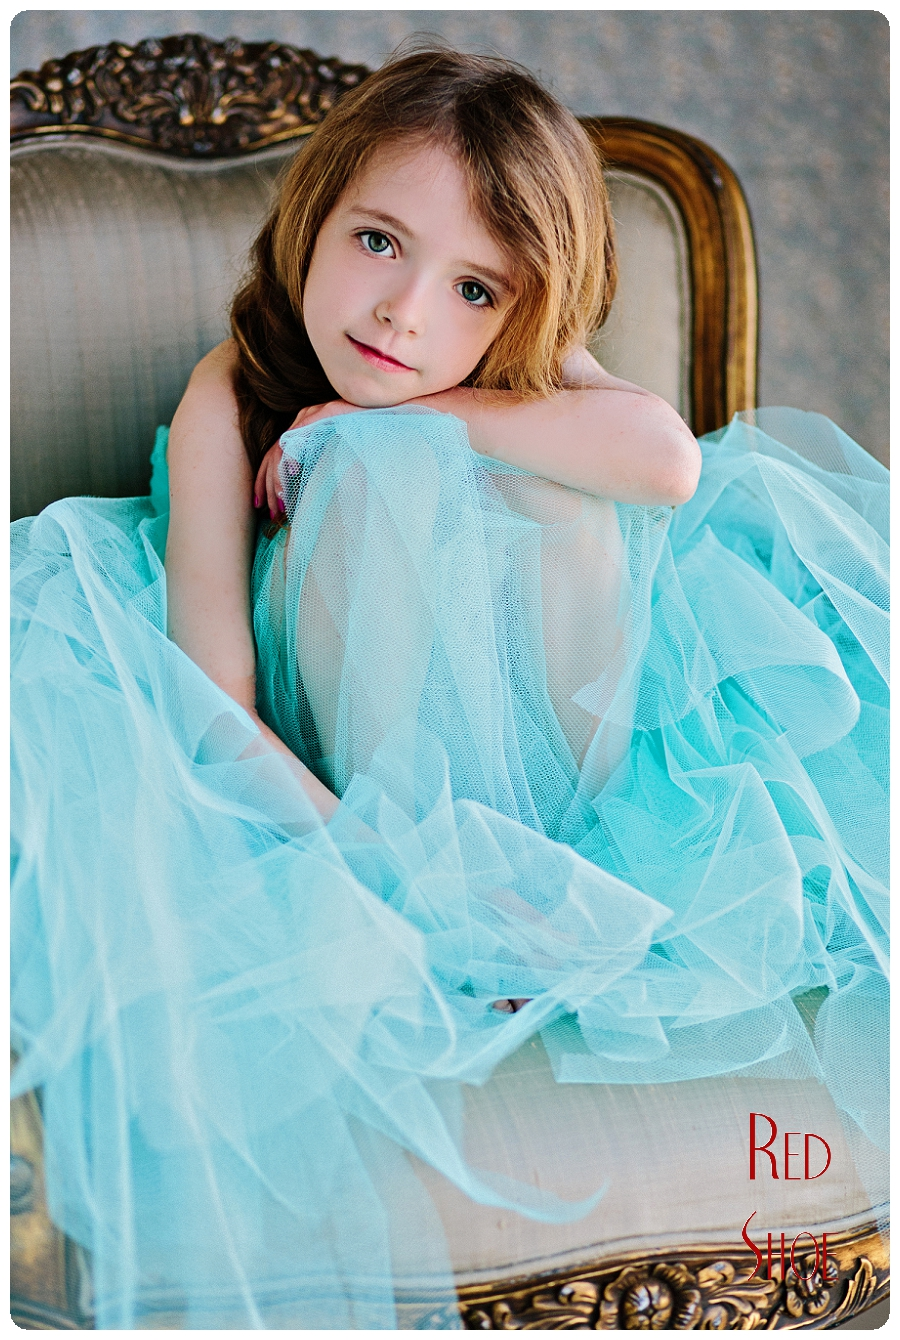 Red Shoe Makeovers, Children photography Chester, girl photo shoots, Red Shoe for girls, Beautiful portraits of girls_0005.jpg